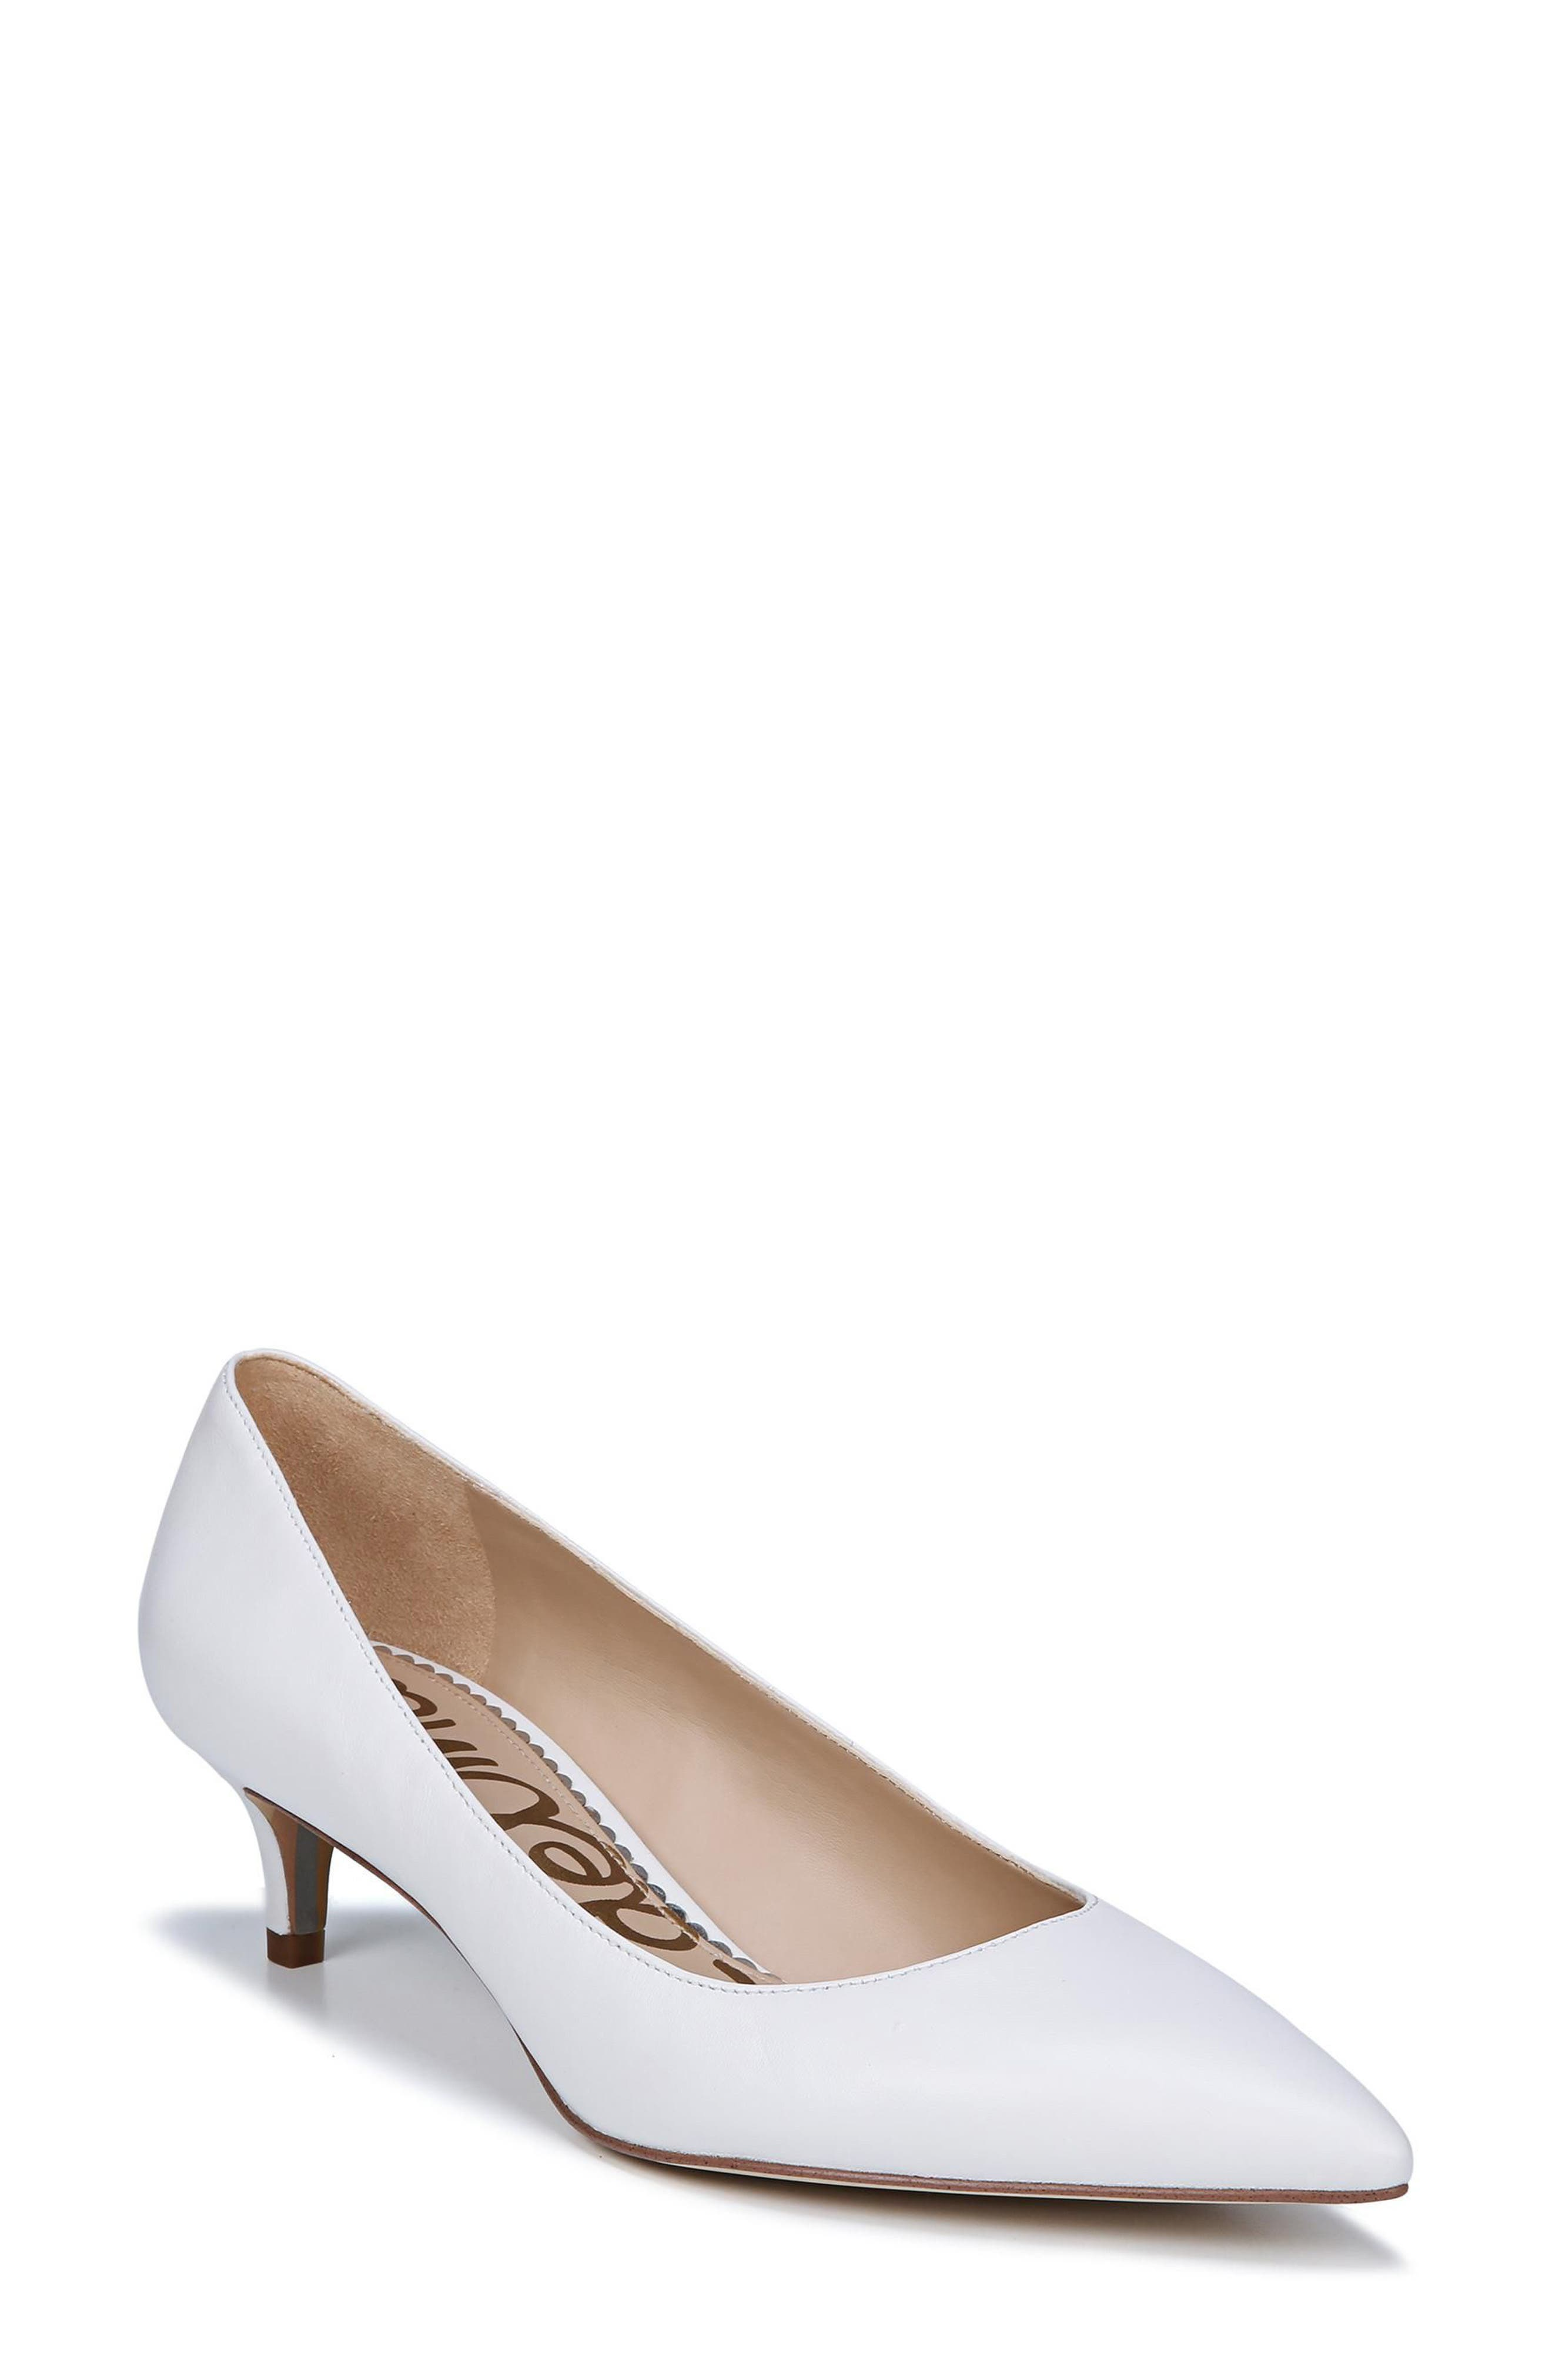 Dori Pump,                             Main thumbnail 1, color,                             BRIGHT WHITE LEATHER